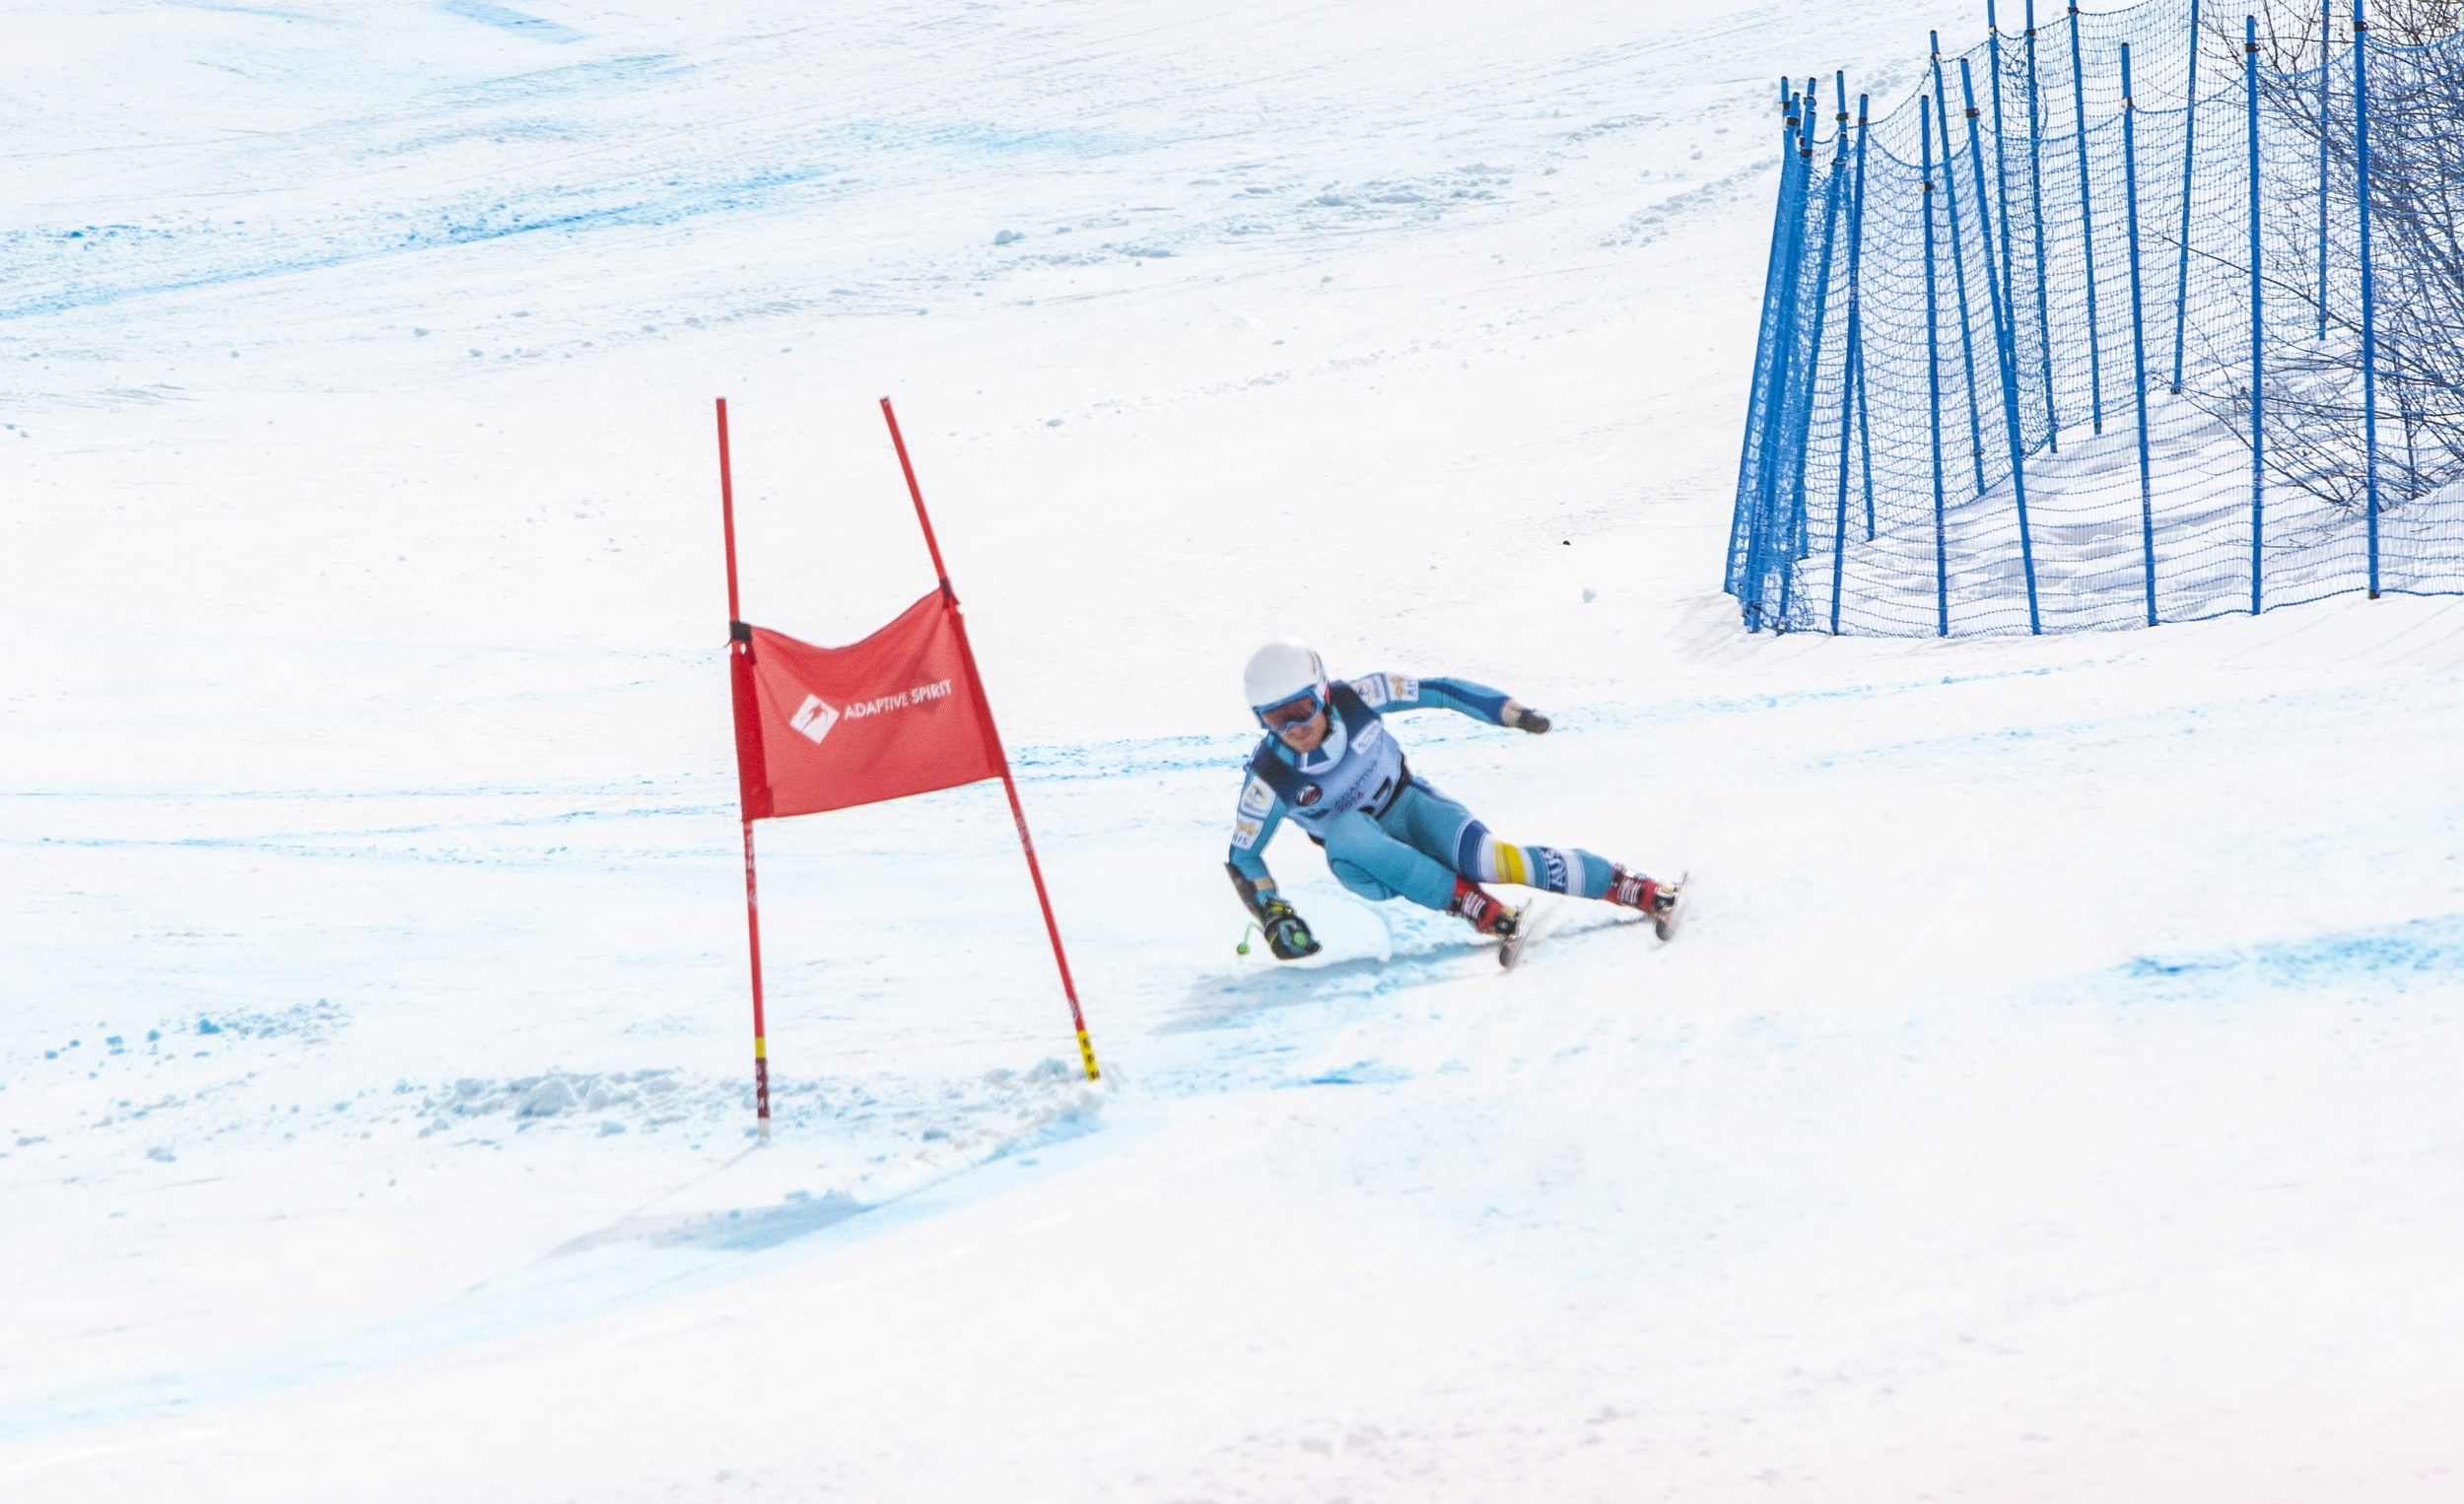 Photo of Mitch competing in the Super-G final at Aspen. Photo credit to  Bryan Myss